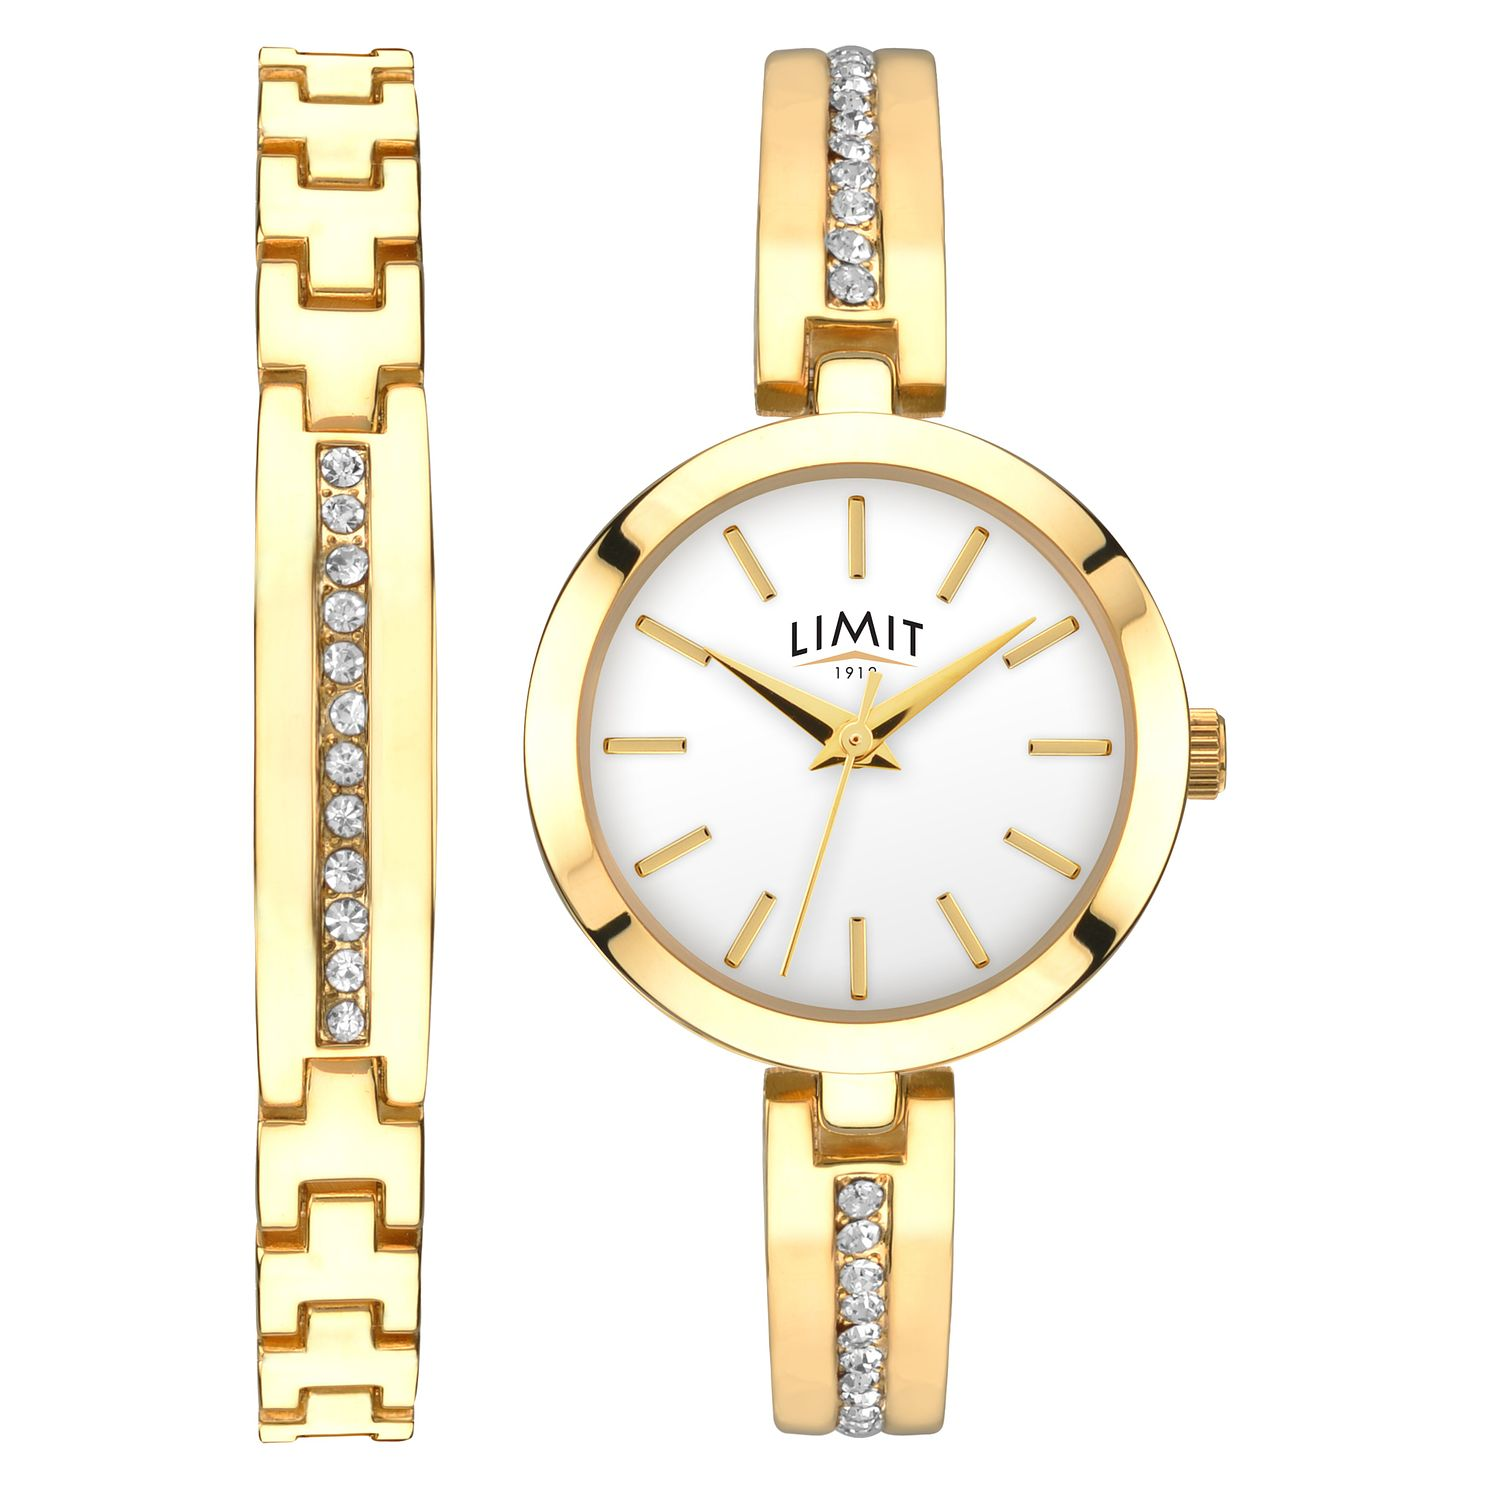 Limit Ladies' 2-Piece Gold-Tone Bracelet & Watch Set - Product number 1043013